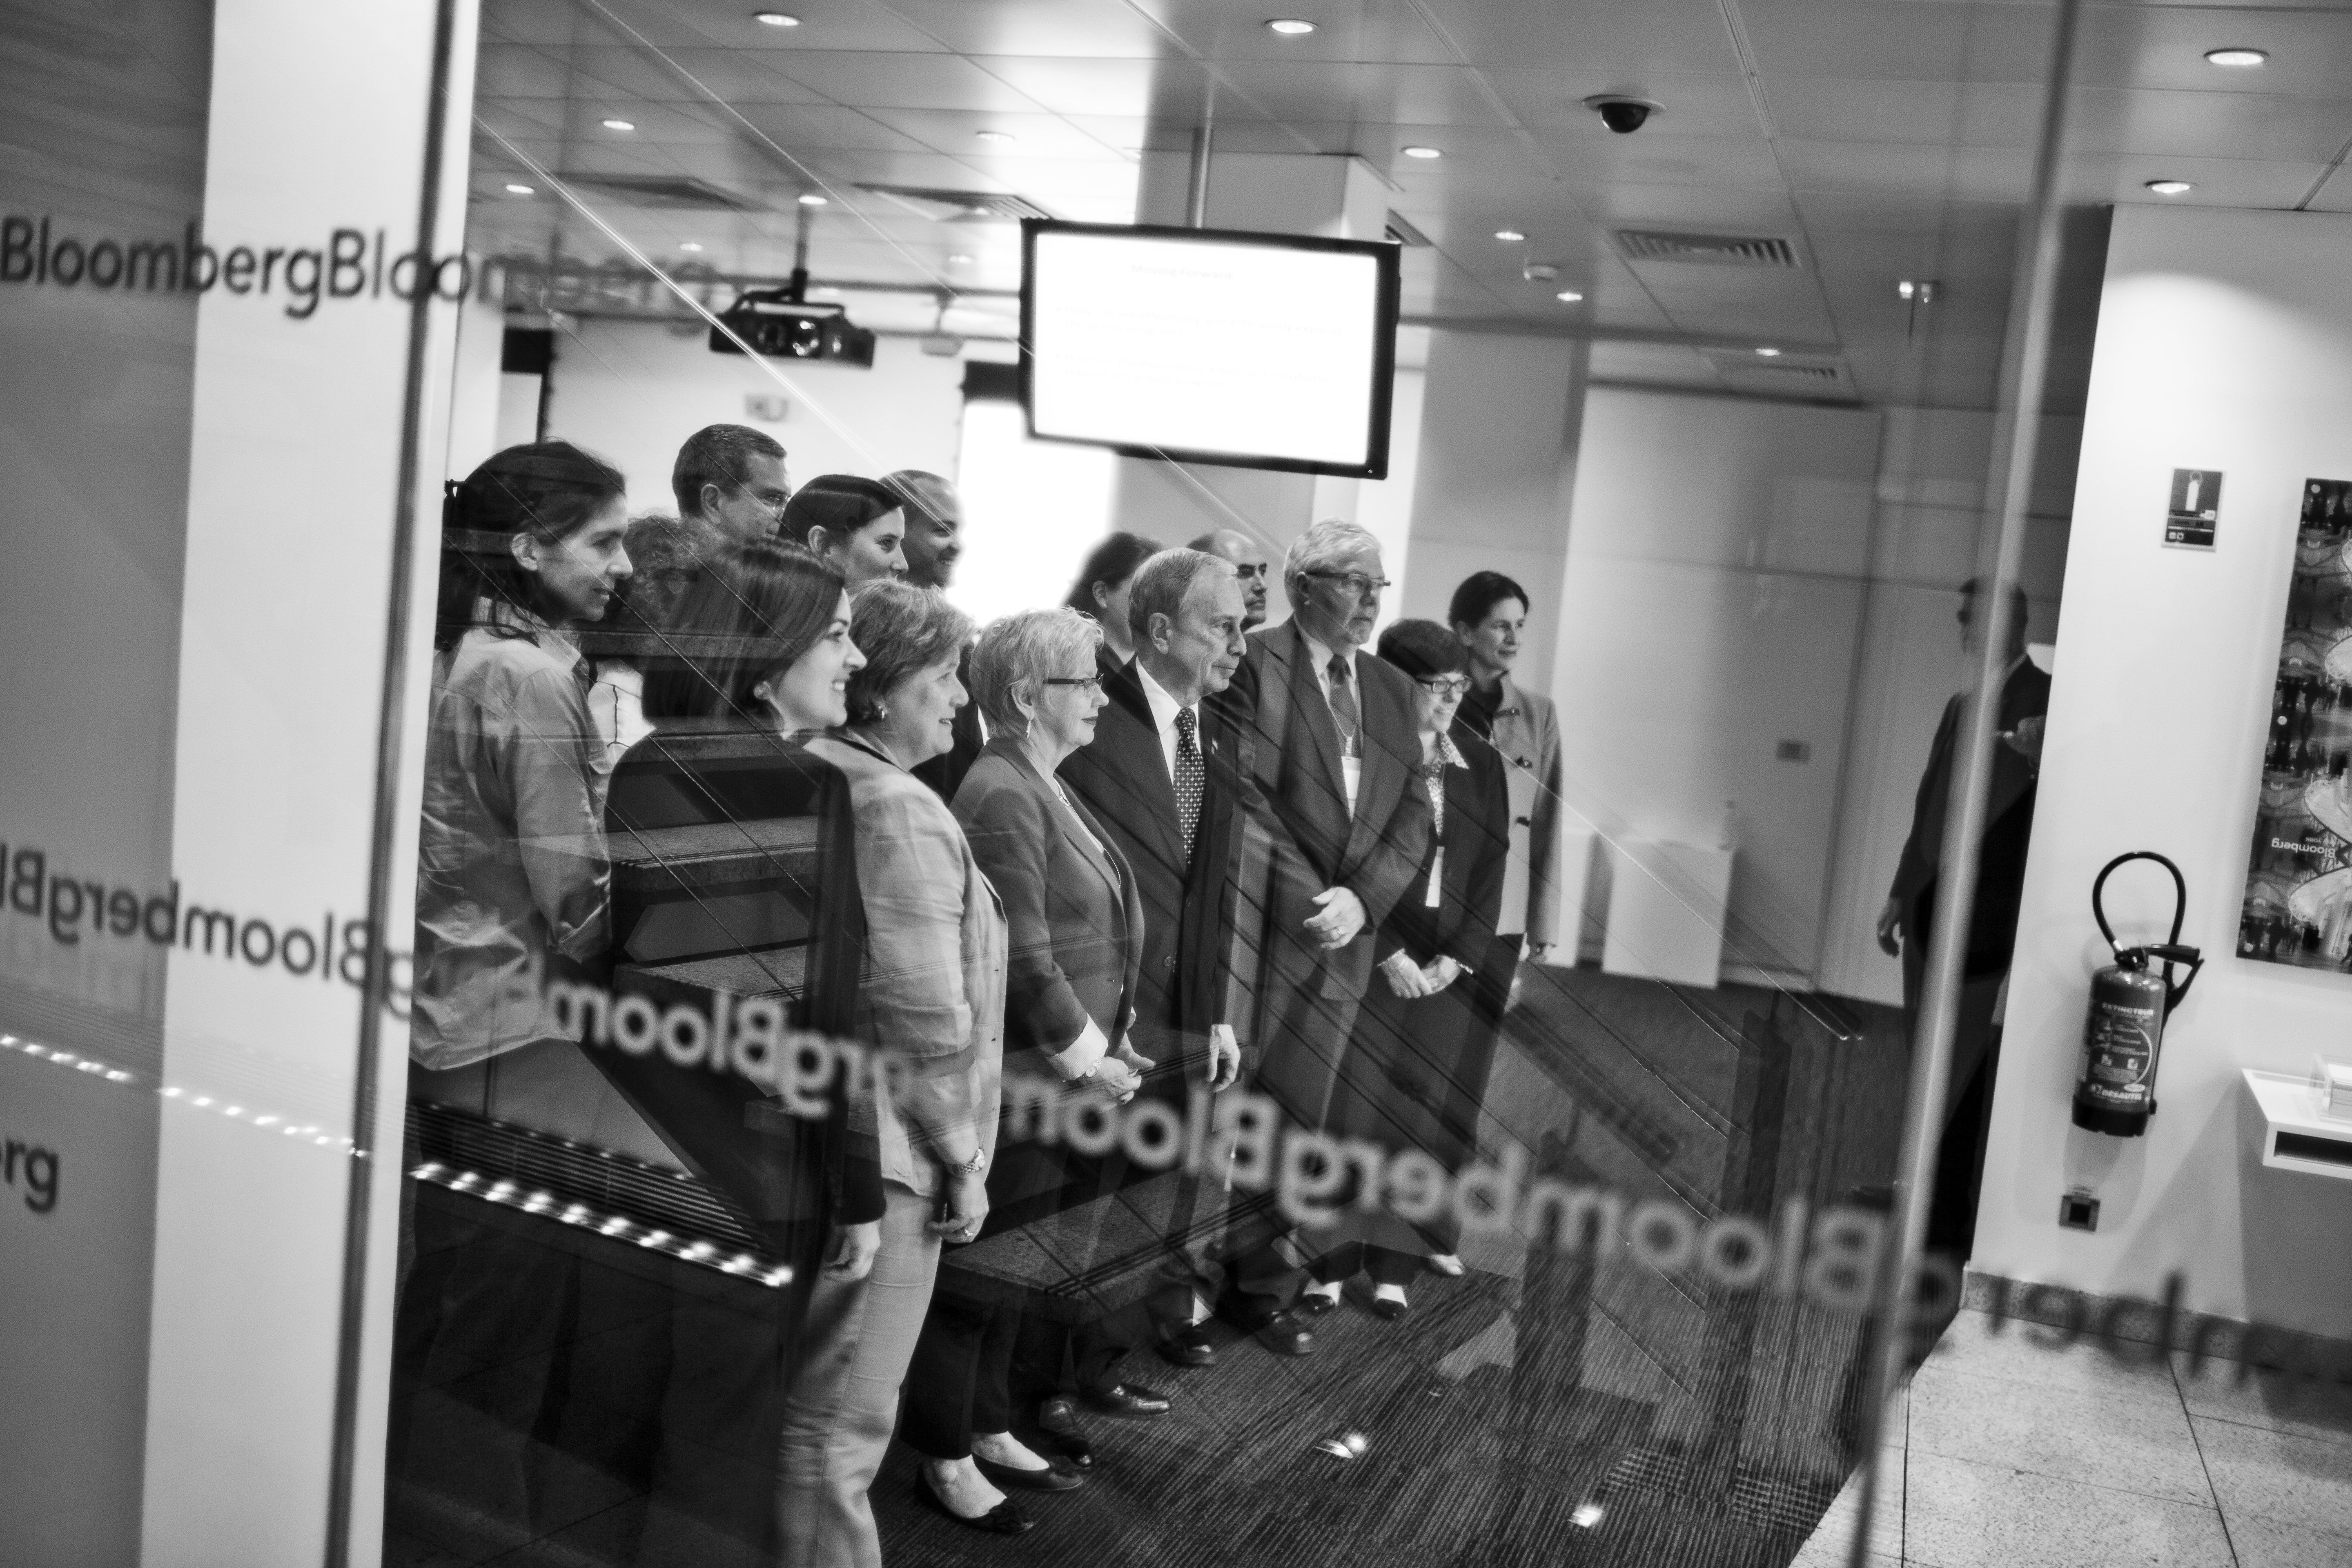 Bloomberg takes part in a meeting and listens to pitches on the 'Bloomberg Global Road Safety' program at the Bloomberg LP, Paris office.